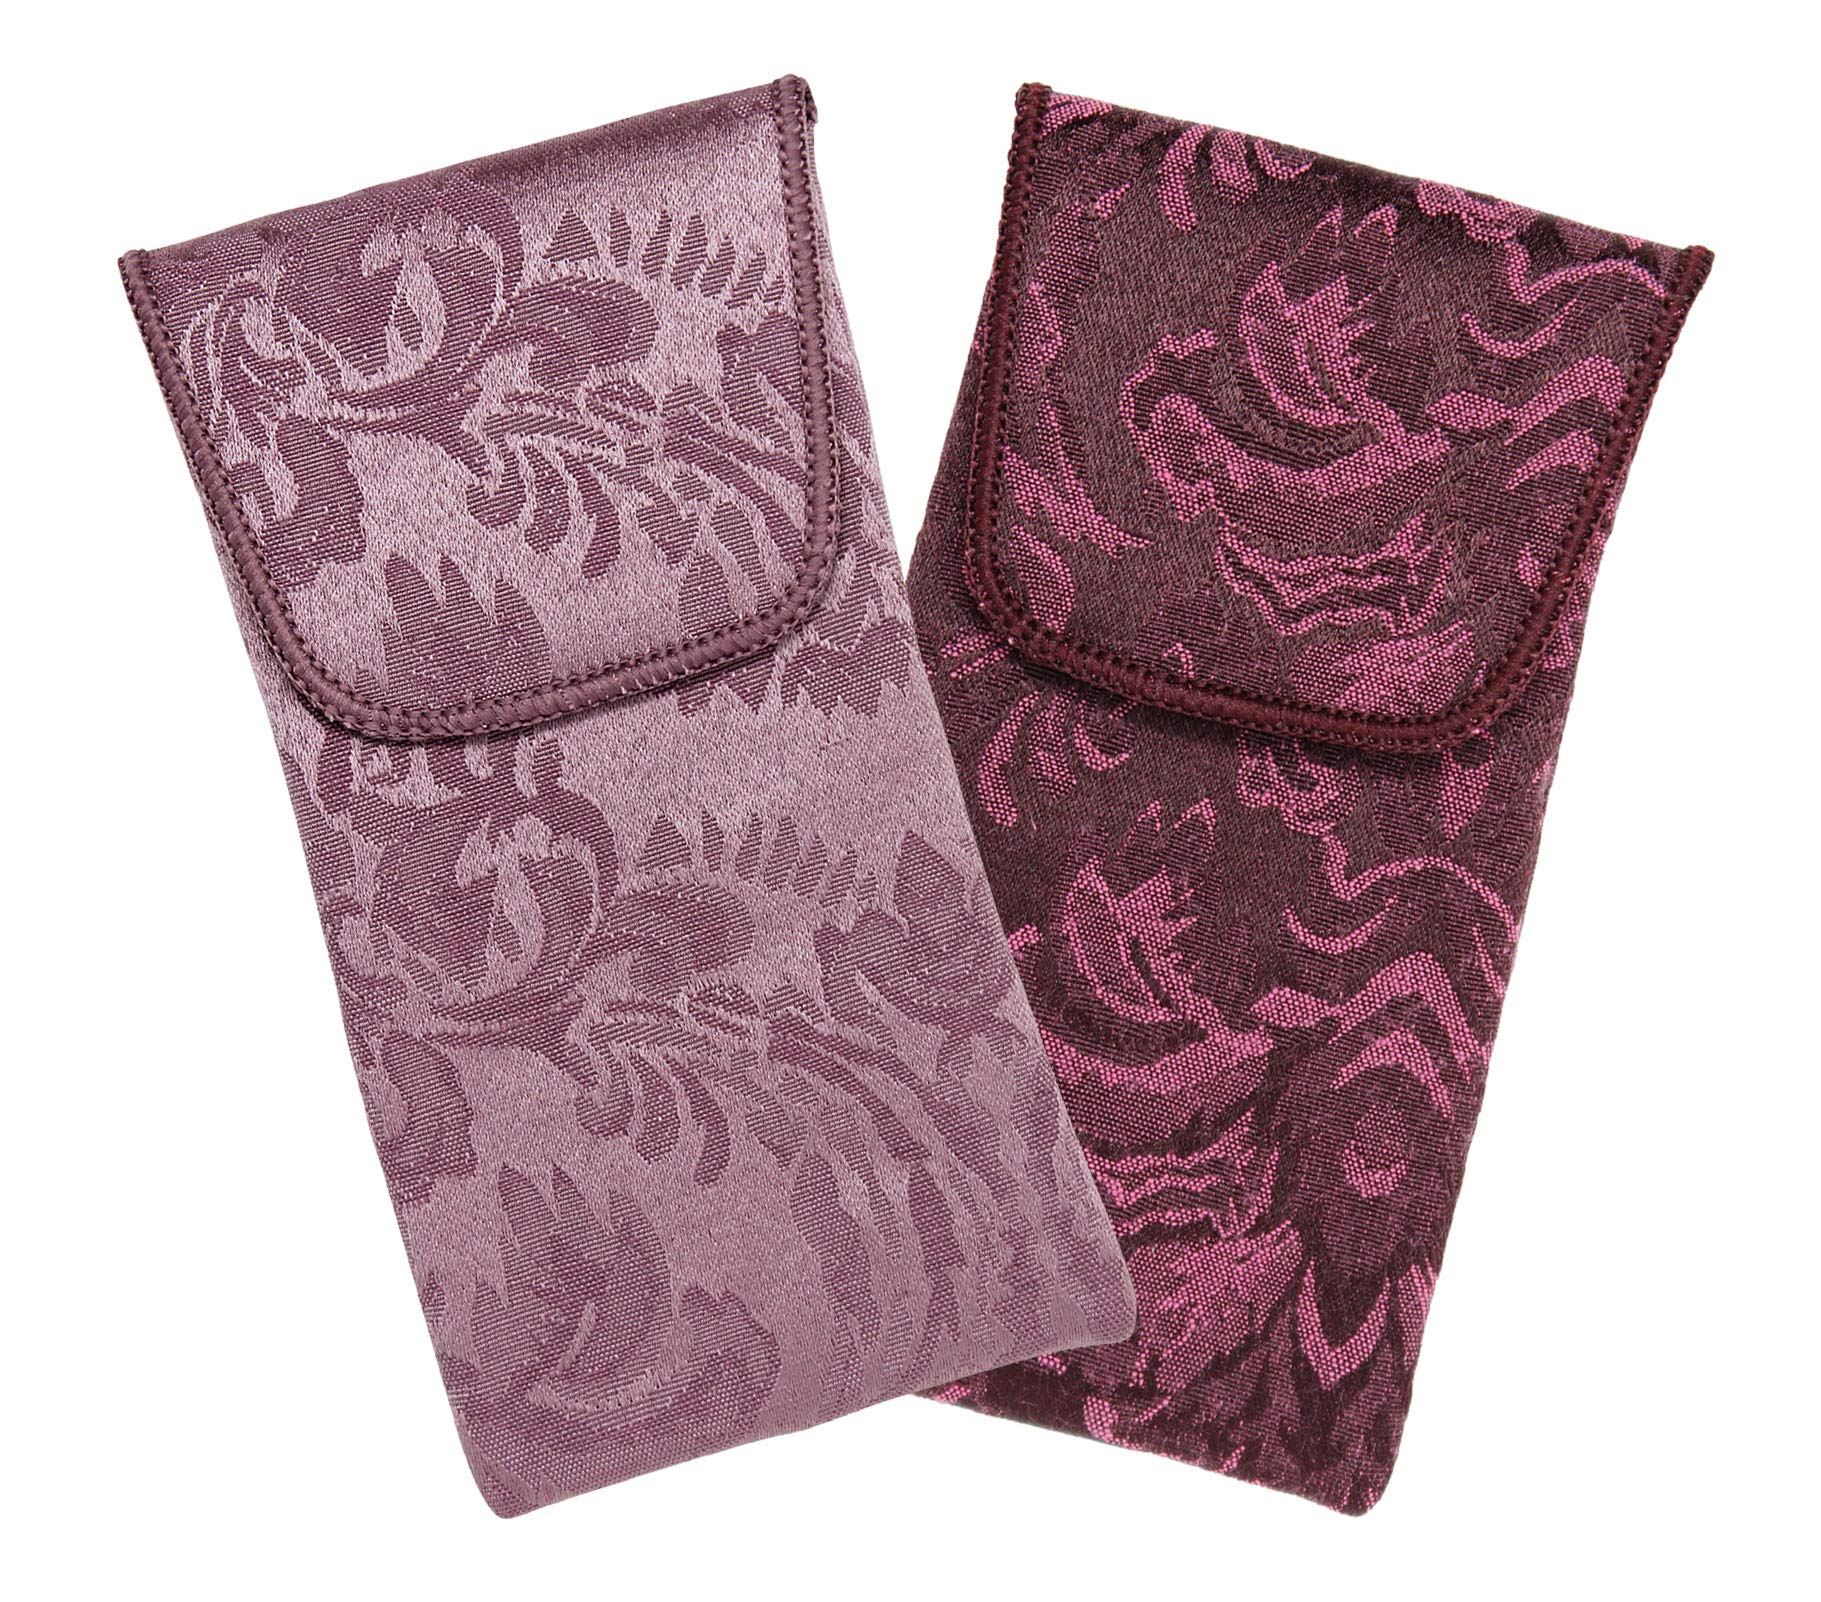 2 Pack Fabric Eyeglass Case Top Closure, Slip In Eyeglass Case Soft For Medium To Large Glasses, Women